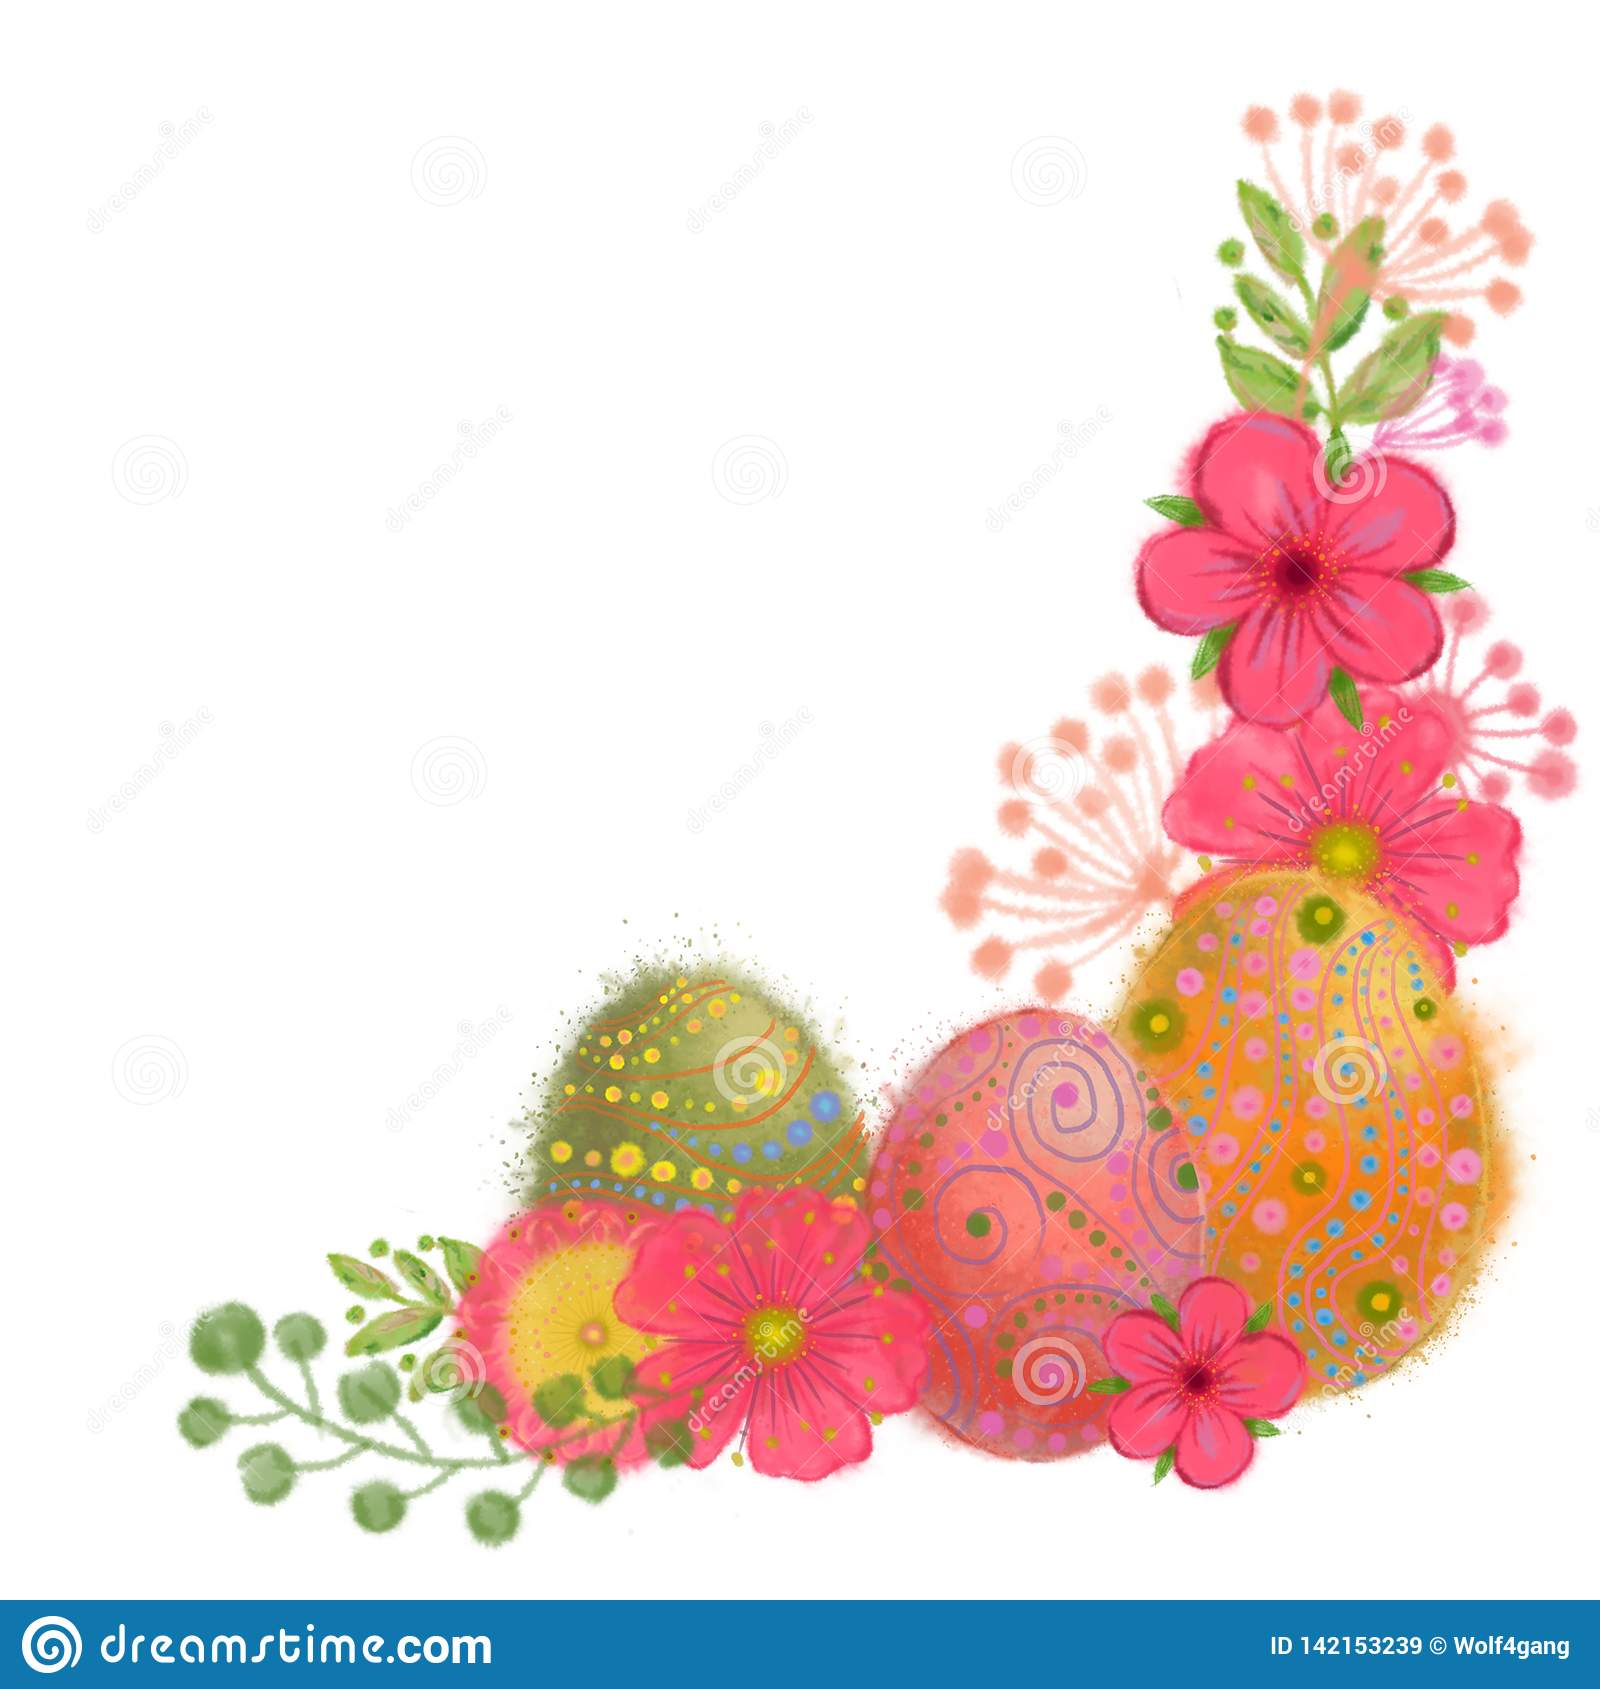 Easter Eggs and Fantasy Flower Corner Vignette Isolated on White Background.